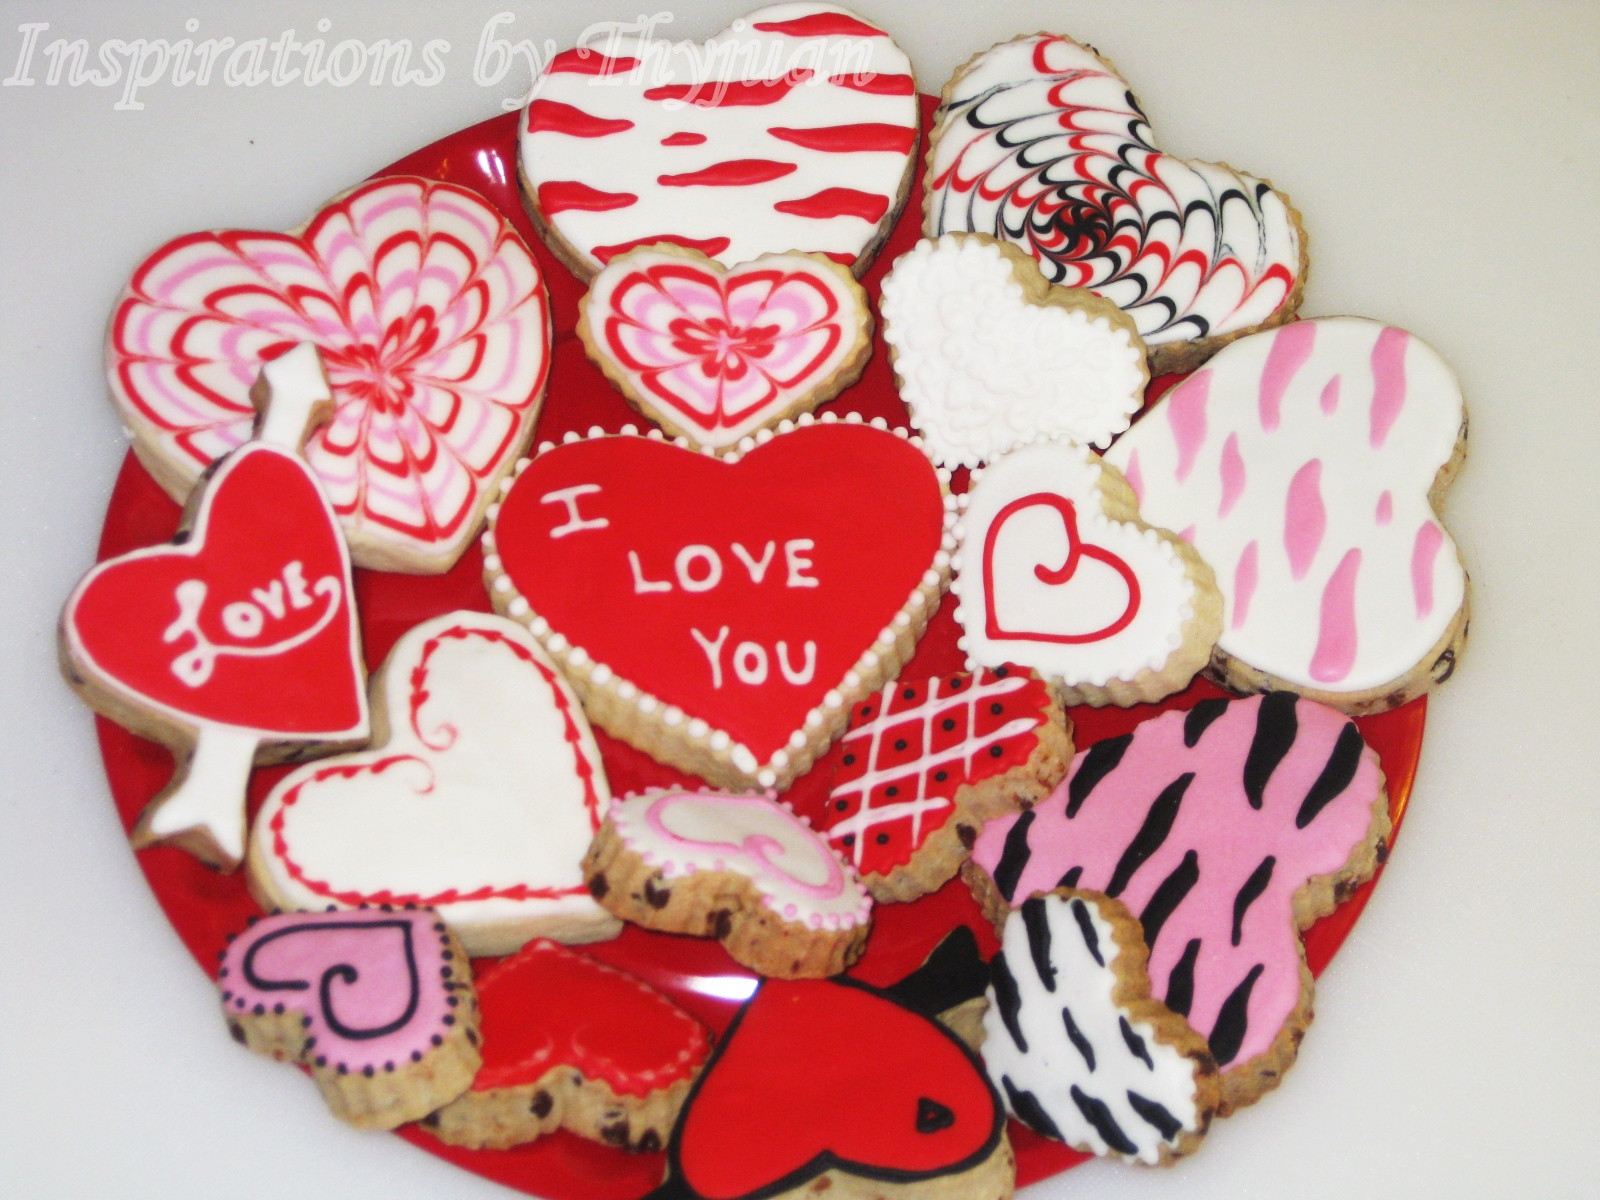 Valentines Day Cookies  Inspirations by Thyjuan LLC Valentine s Day Cookies